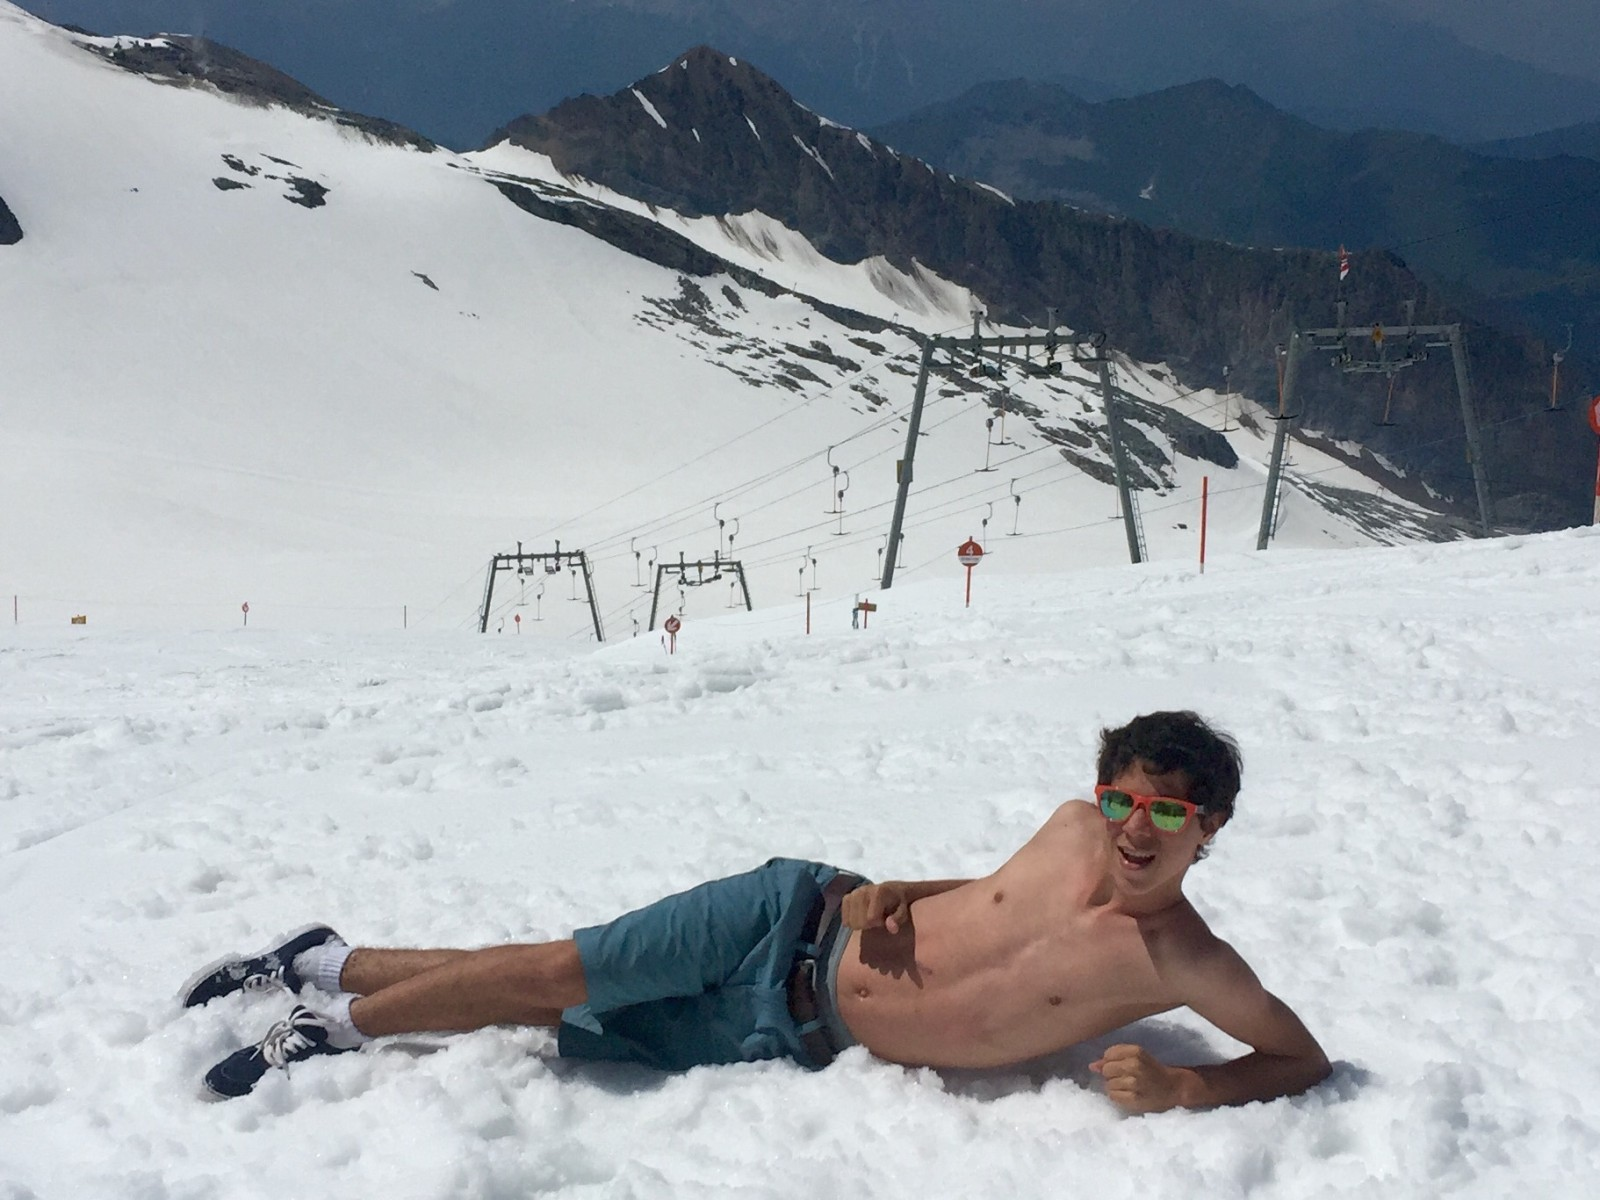 Chilling at 10,000 feet atop the Hinterlux Glacier in Austria.